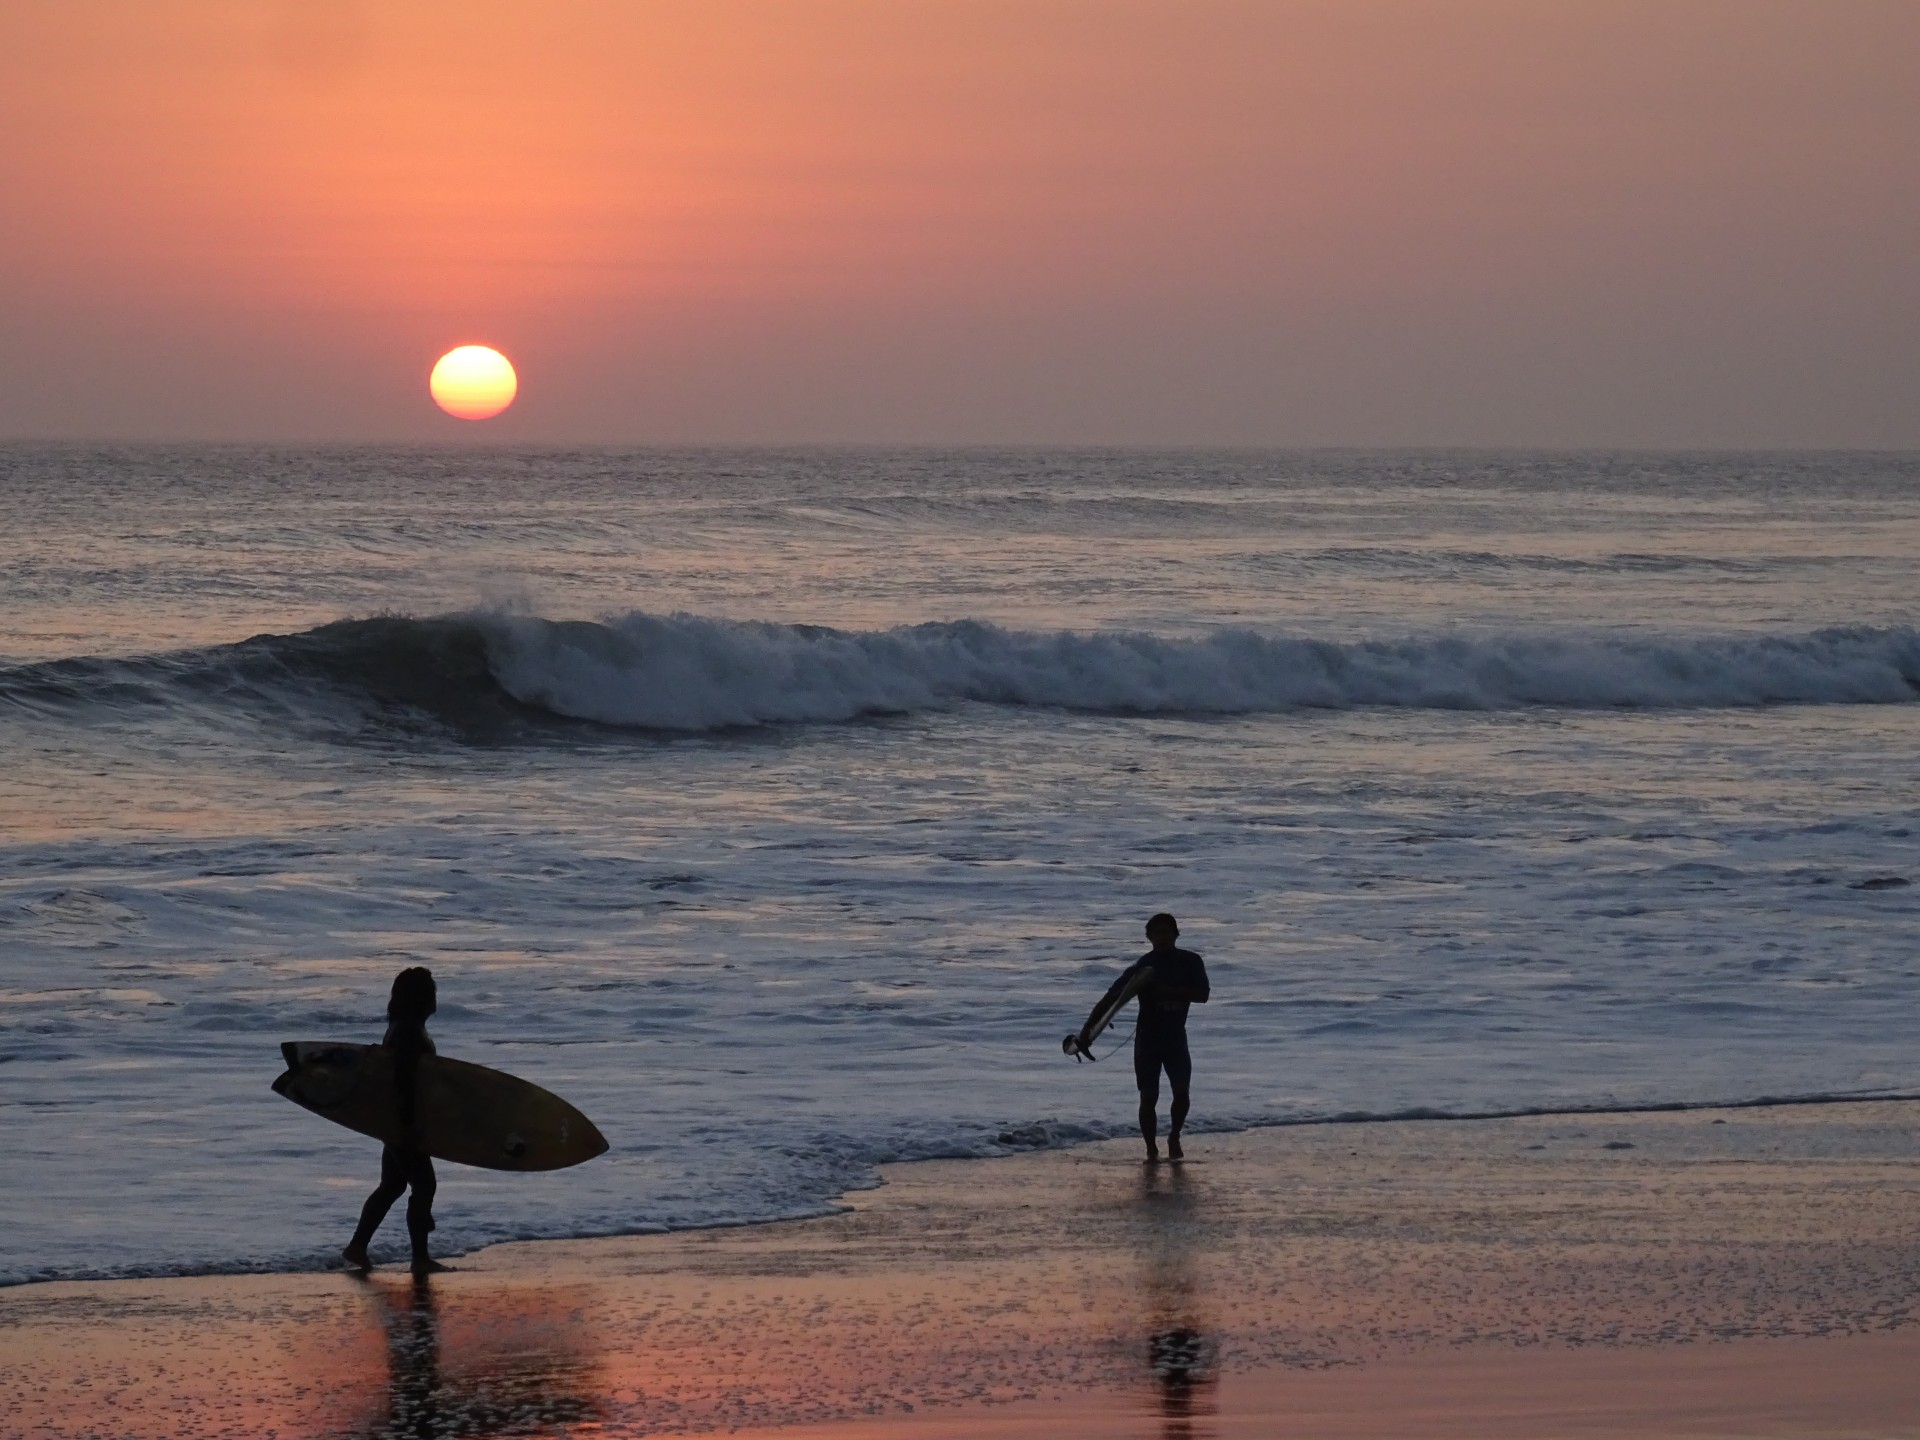 Noone wants to miss a chance for a last surf.